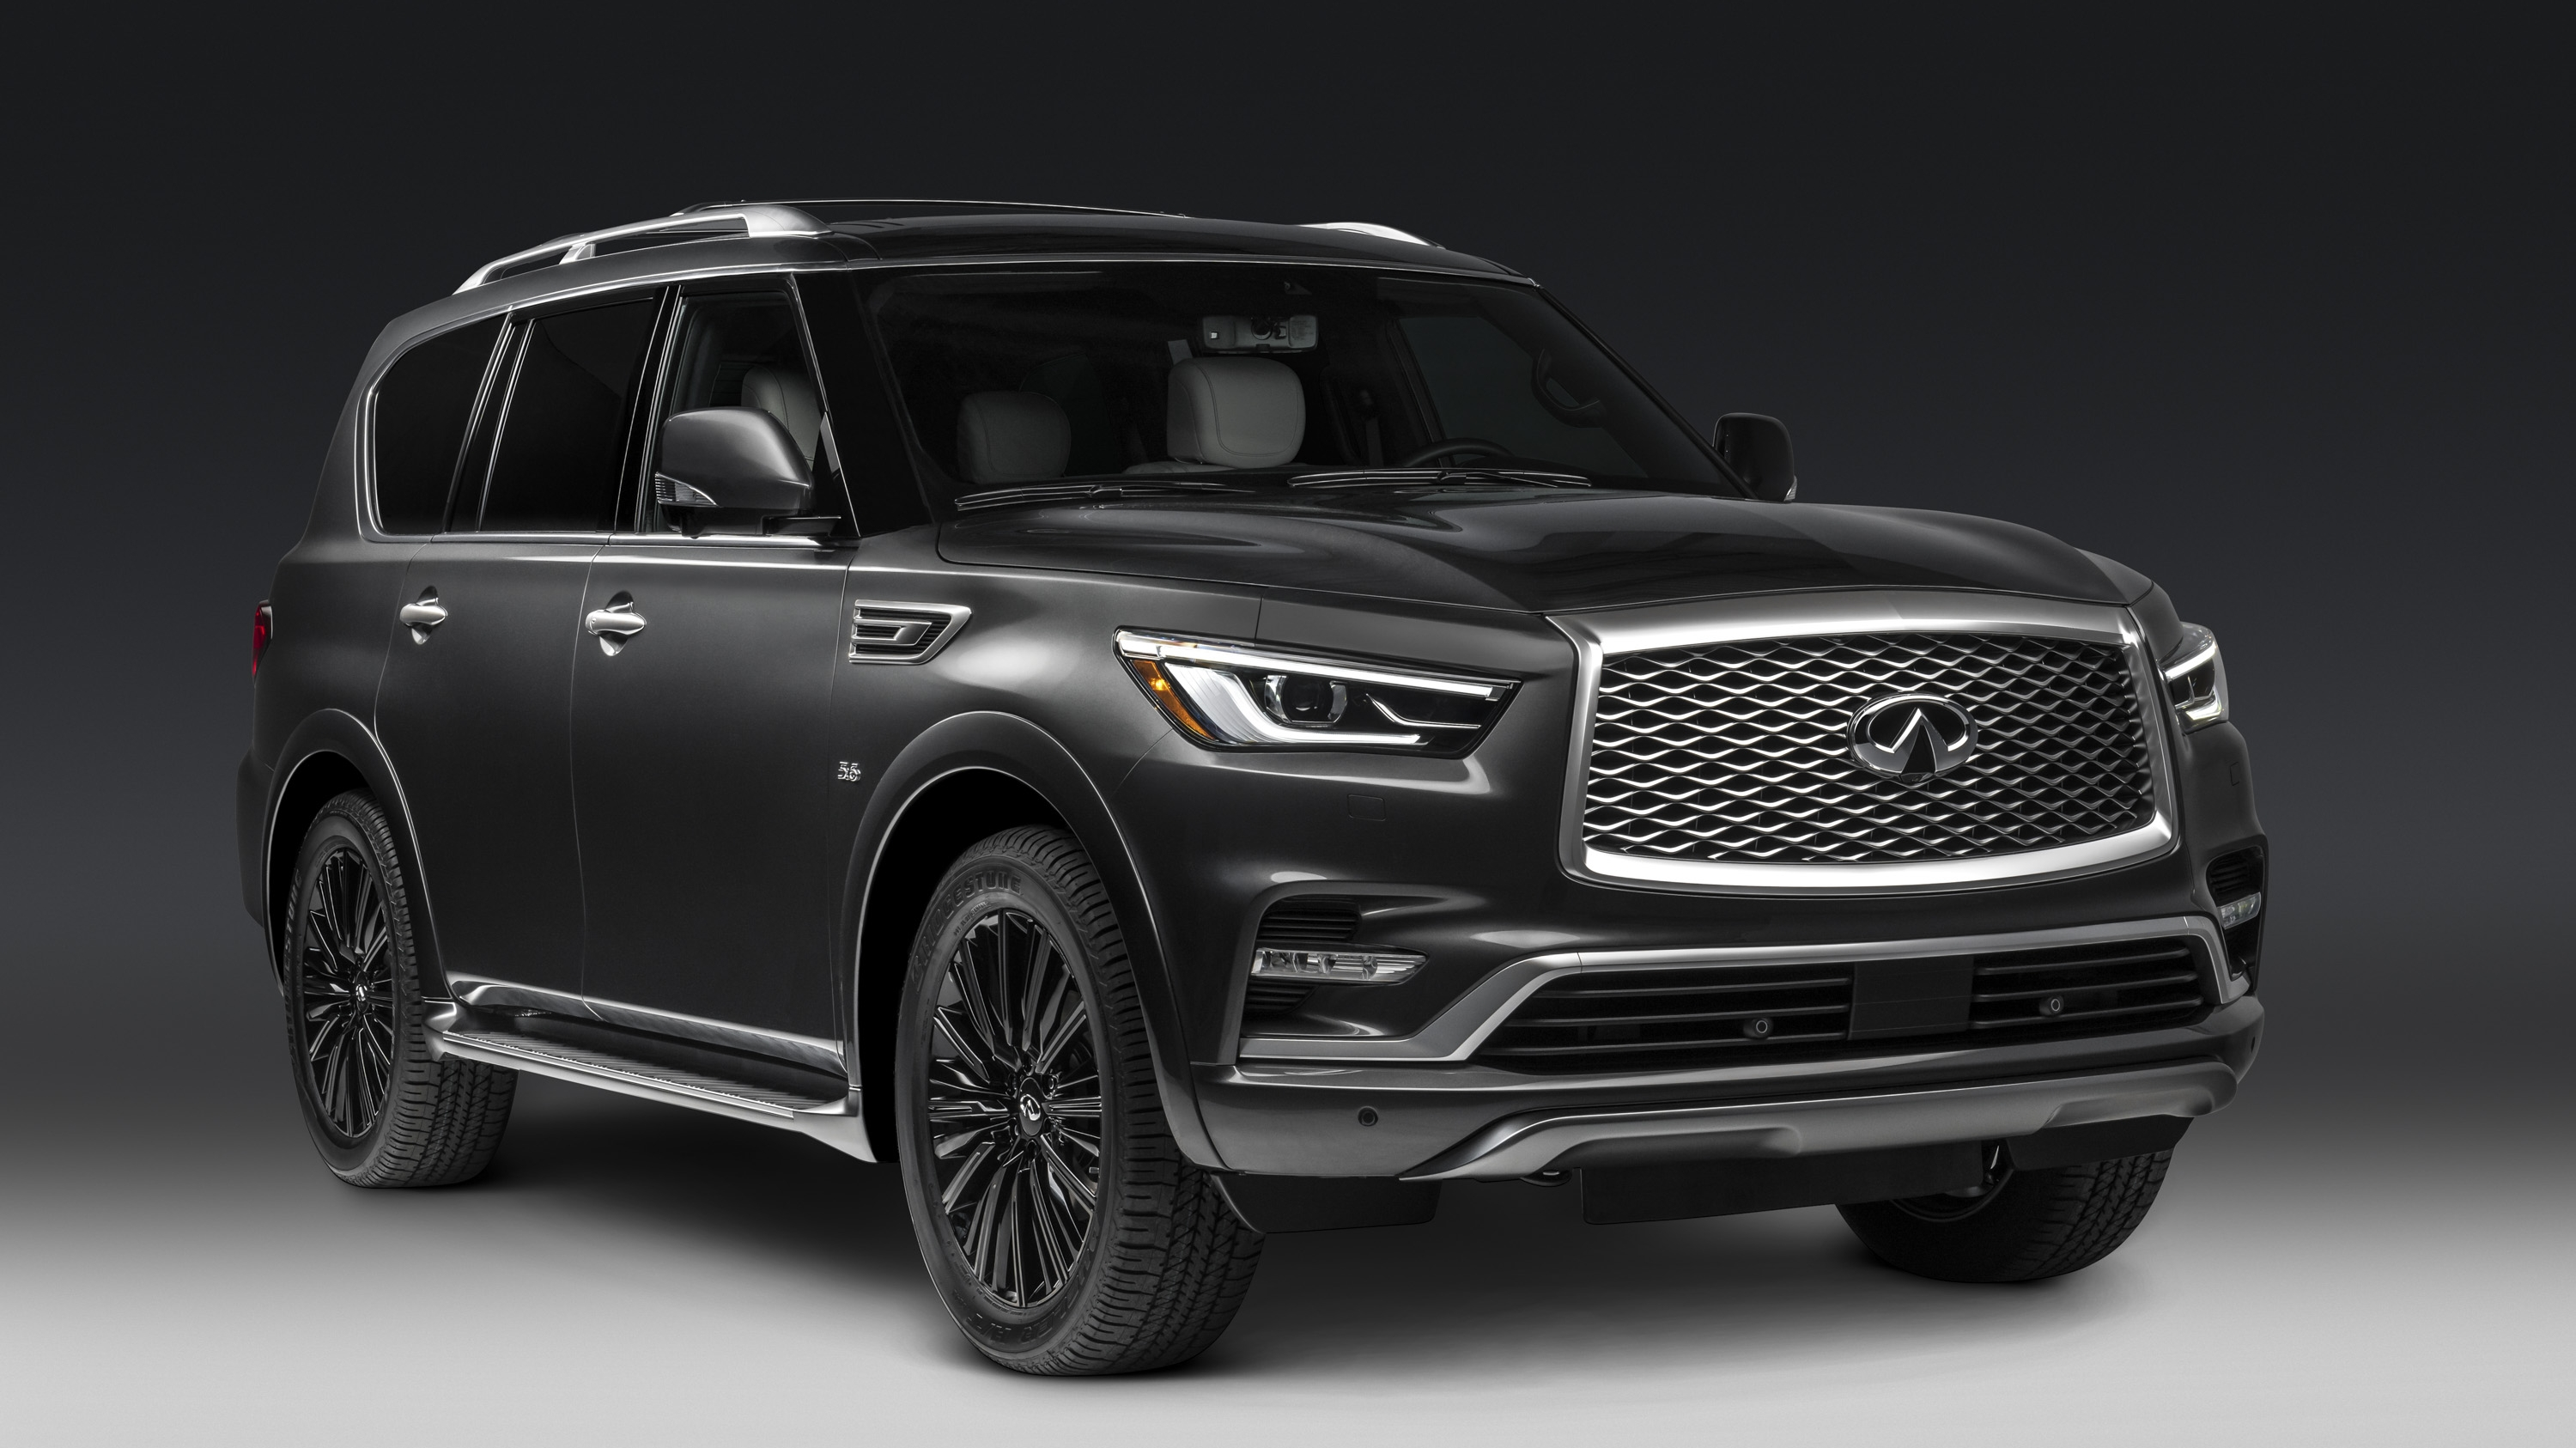 How Much To Paint A Car >> 2019 Infiniti QX80 Limited | Top Speed